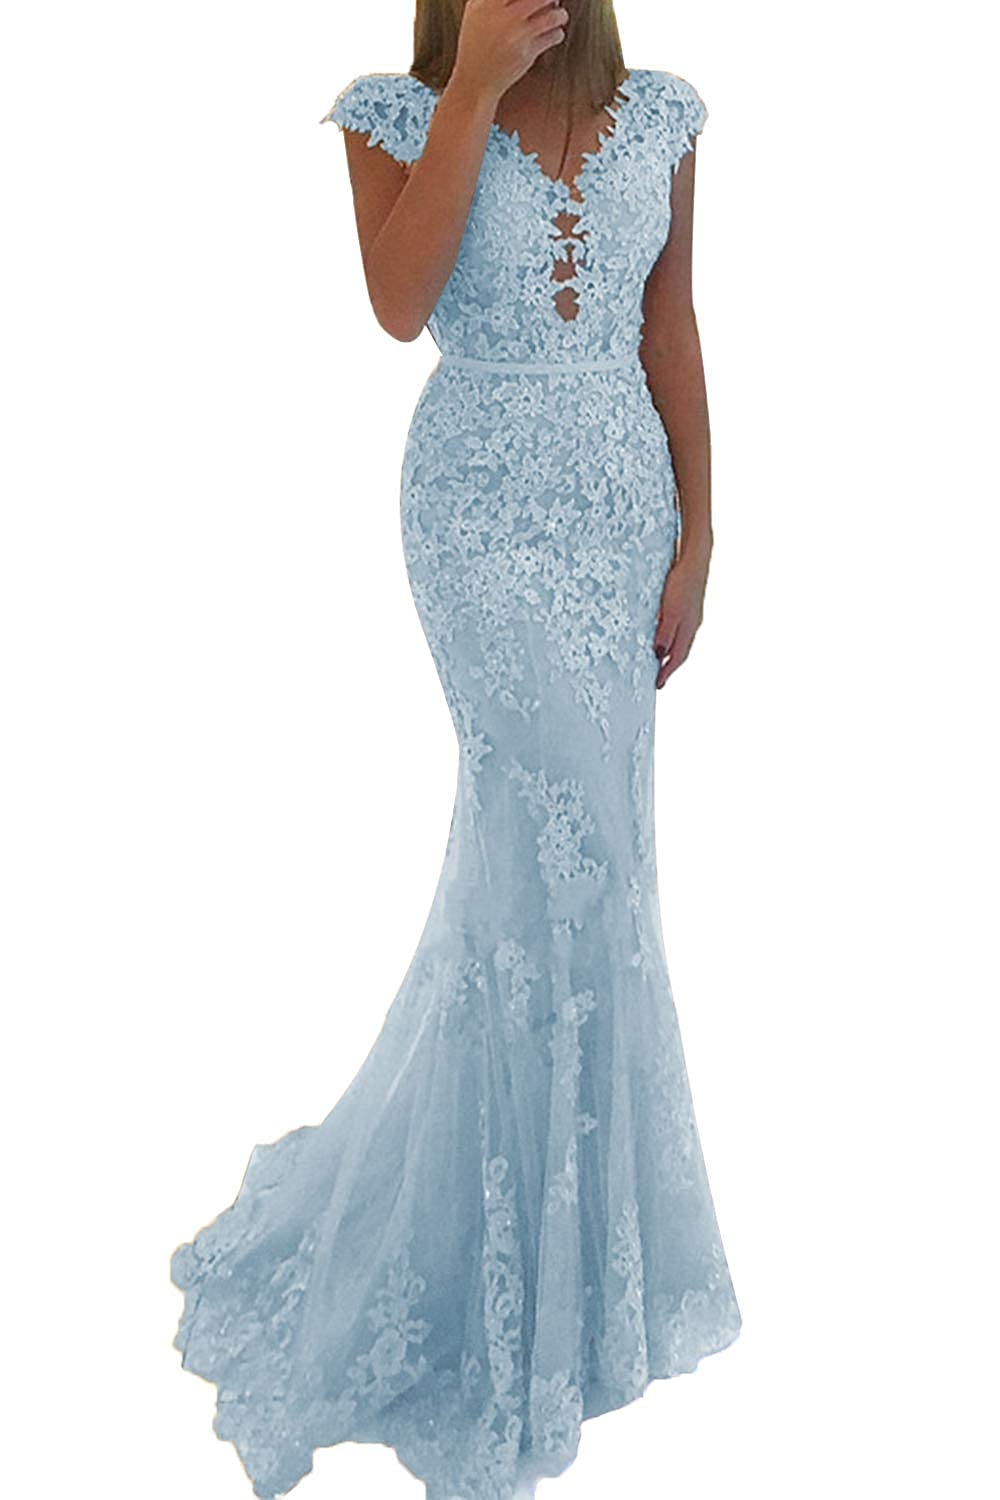 bluee Promworld Women's Lace Applique Beaded Mermaid Prom Dress Cap Sleeve Tulle Evening Gowns Formal